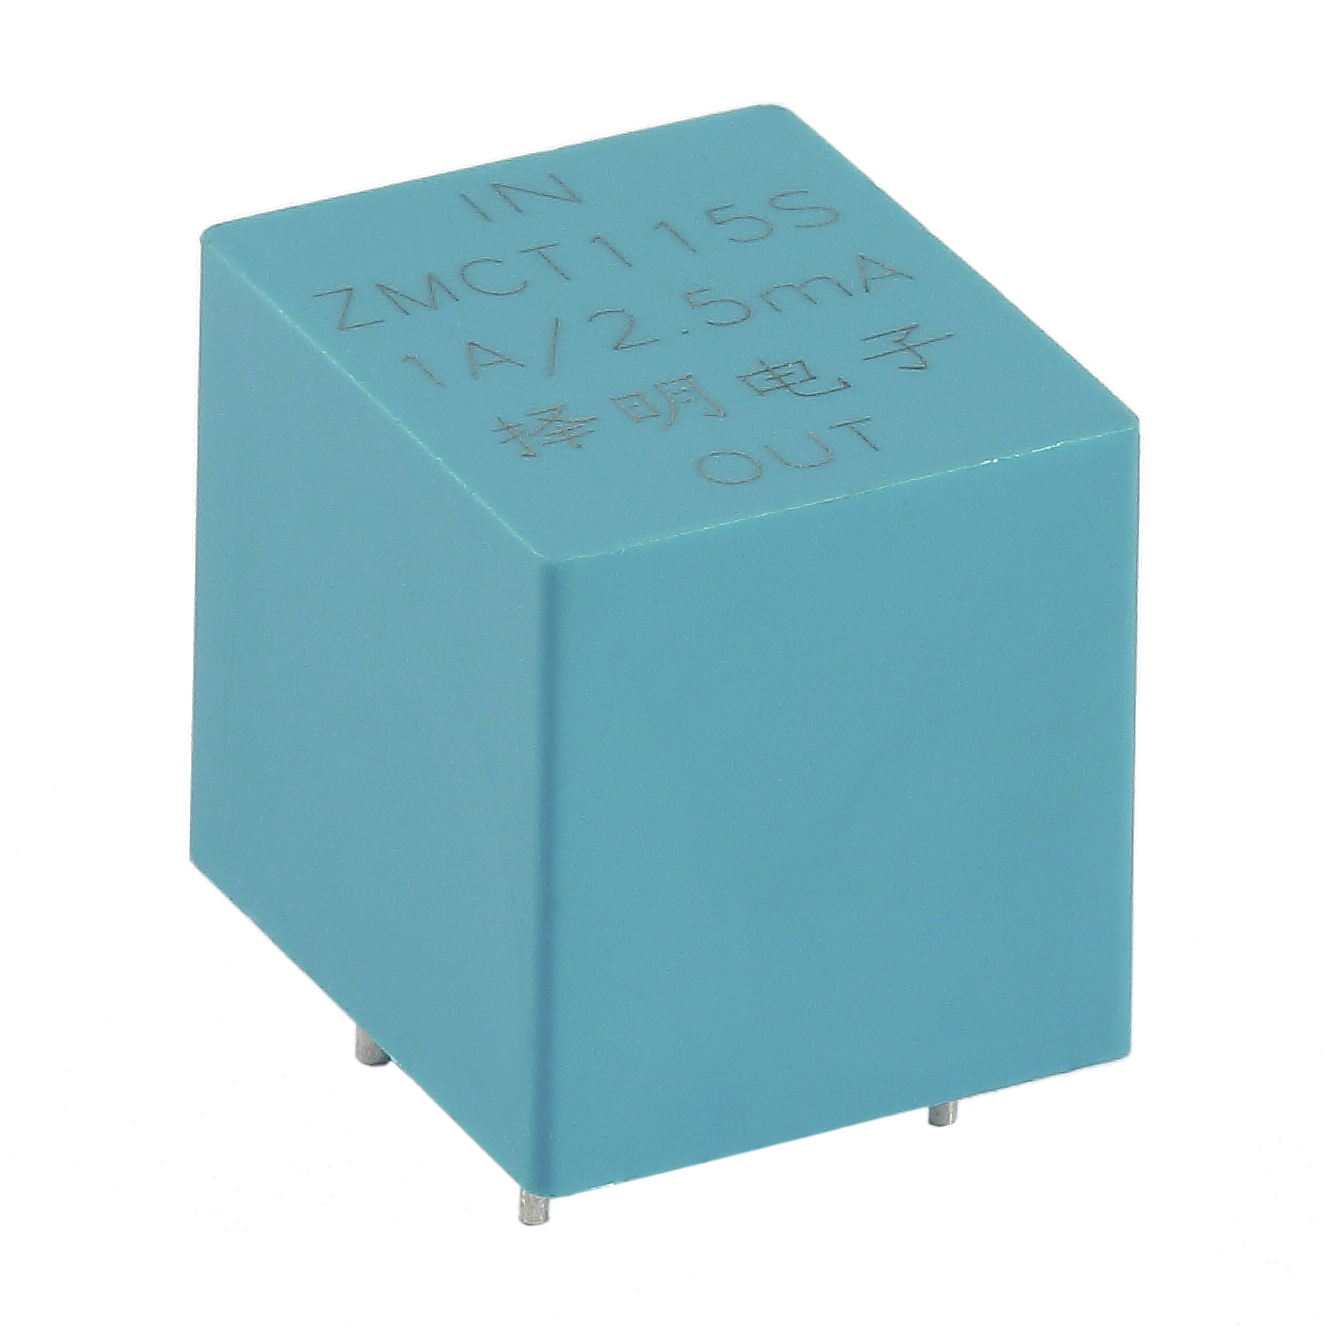 PCB mounting current transformer 400:1